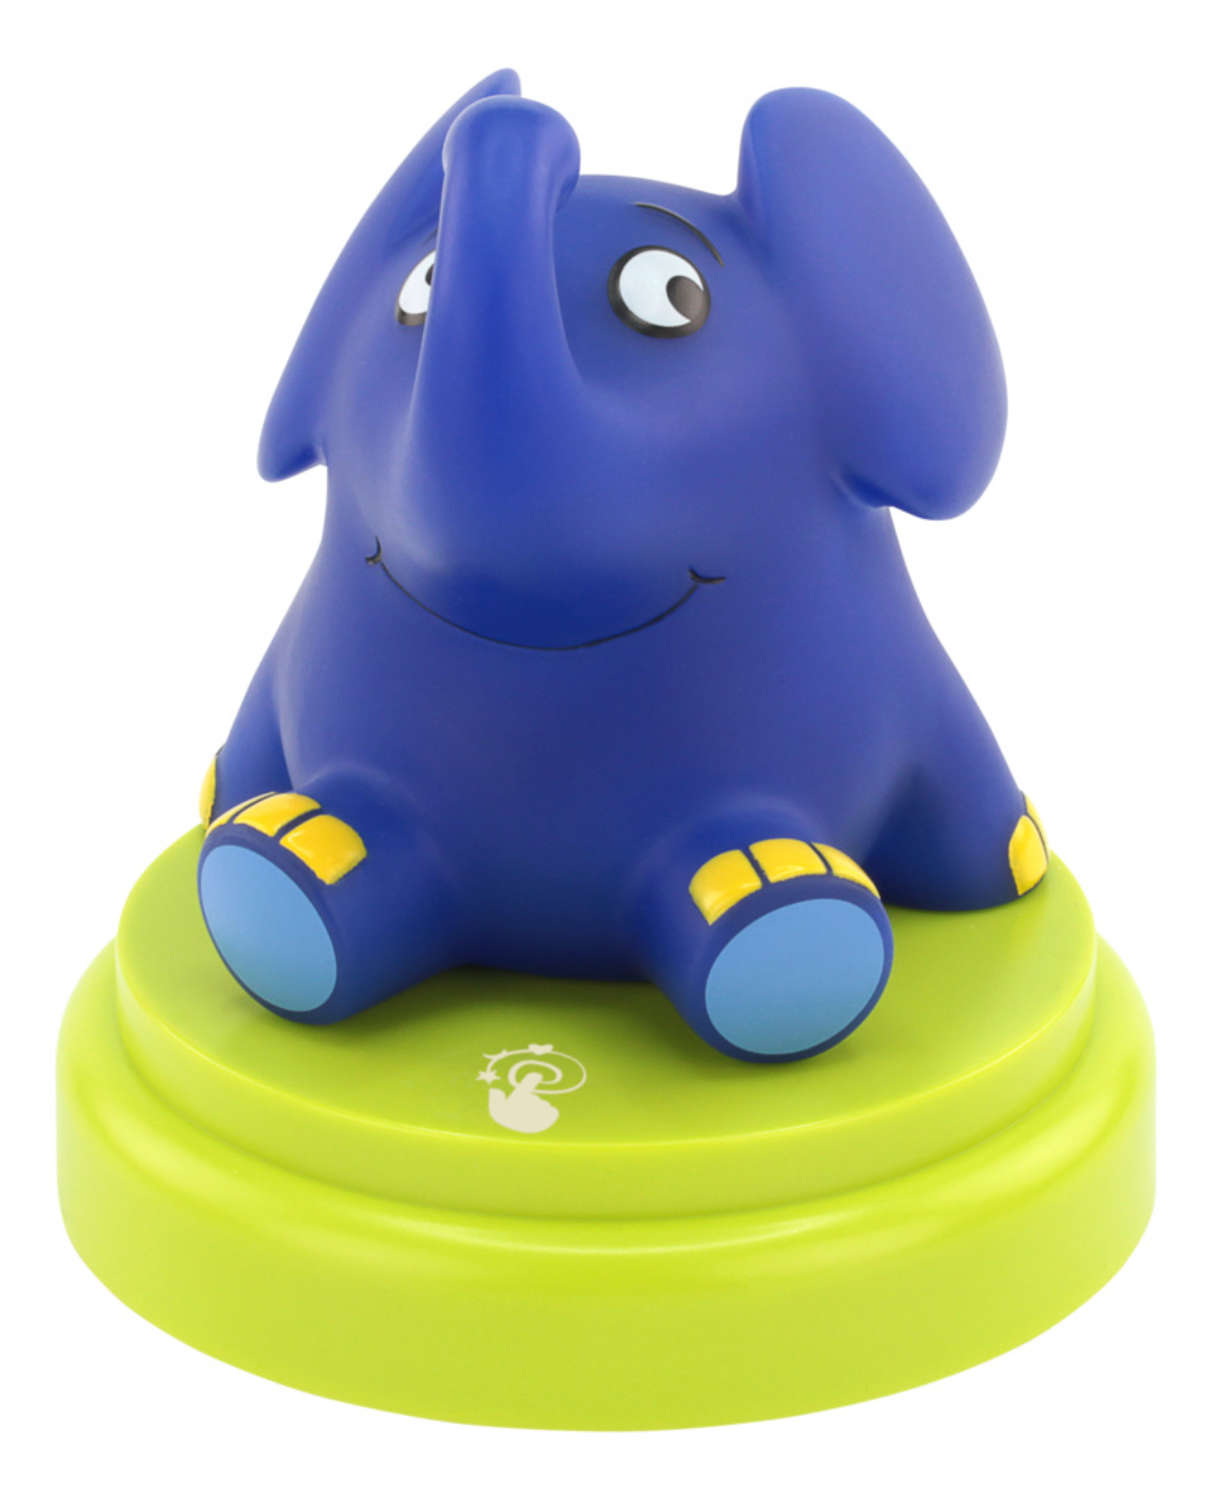 Mobile nightlight Elephant